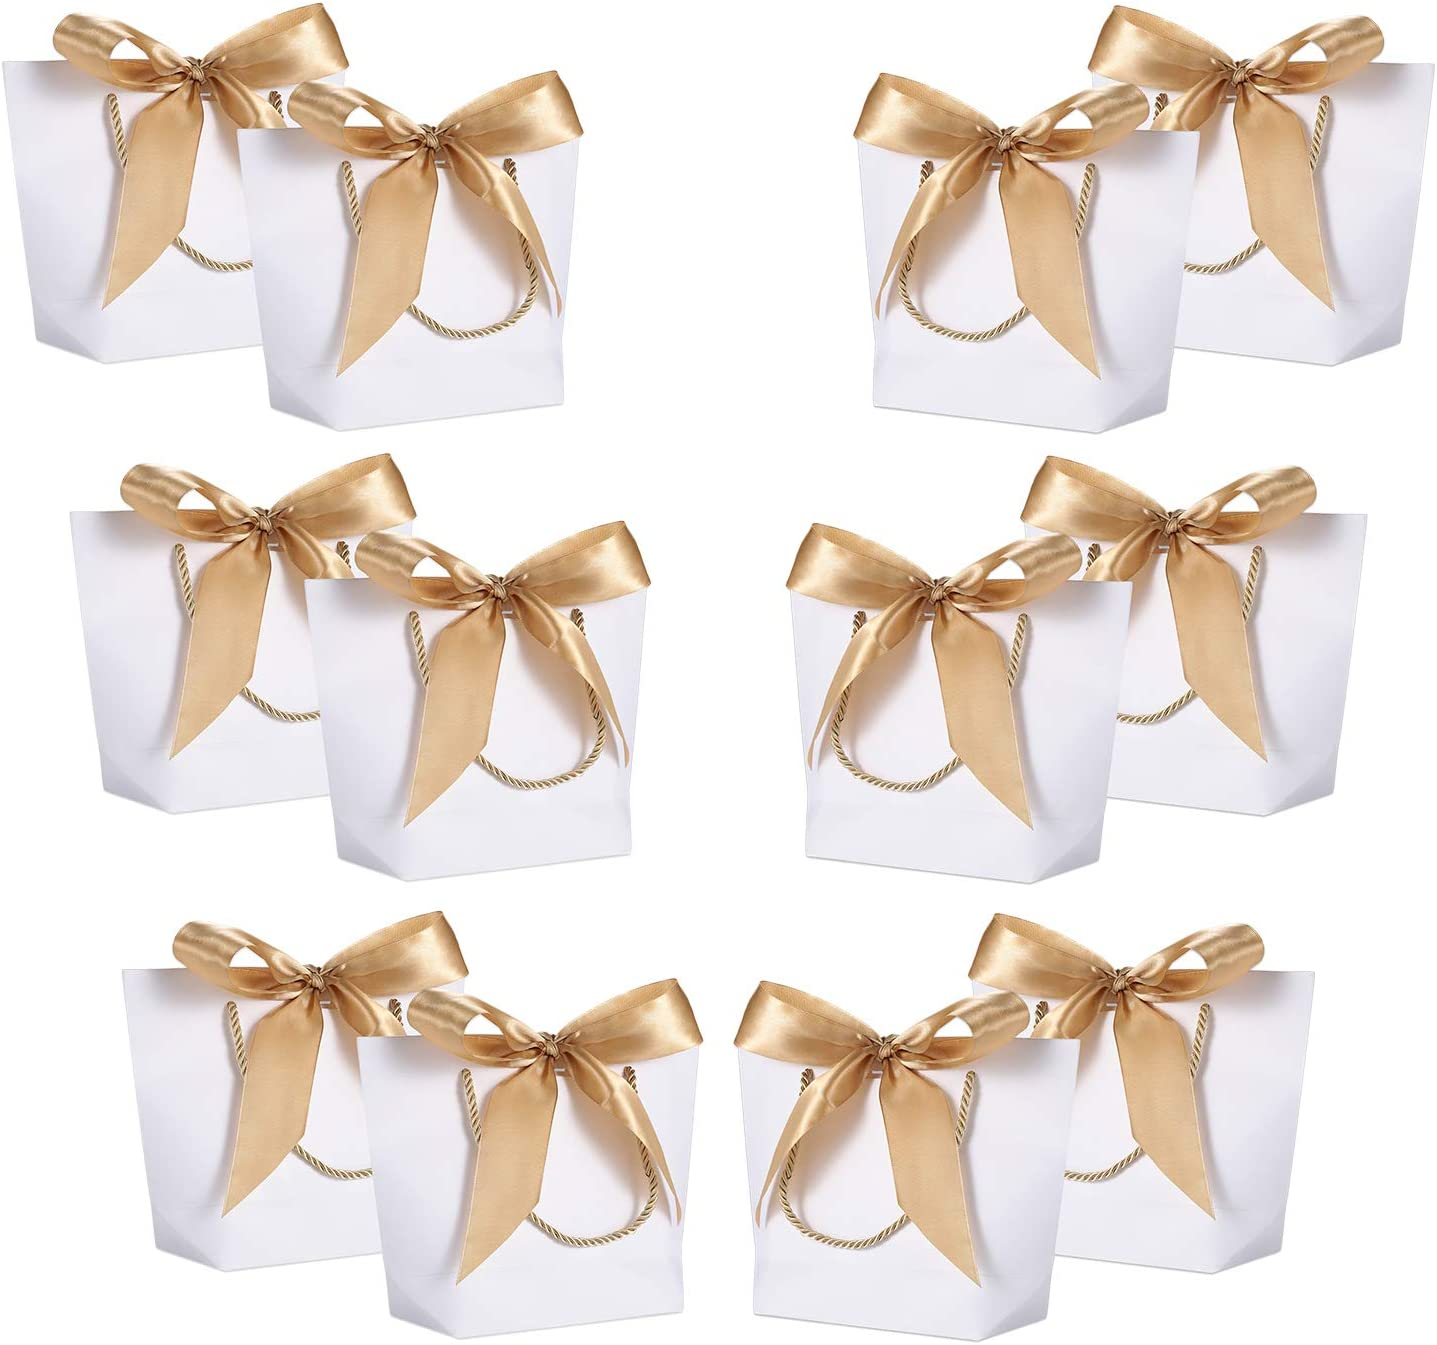 WantGor Gift Bags with Handles .66x6.3x2.76 Paper Party